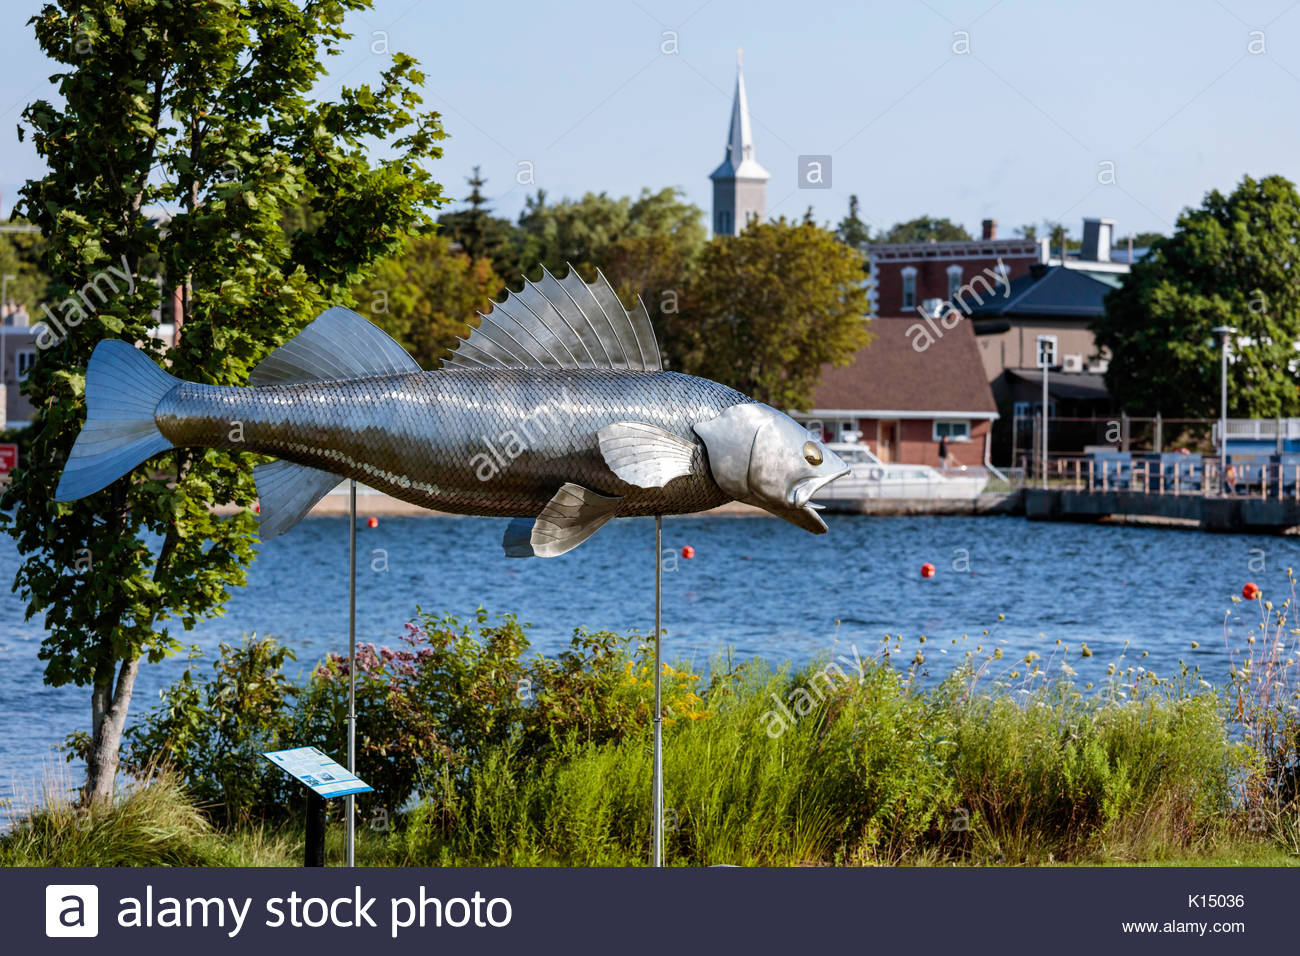 Pisces Pete stainless steel 12 foot long metal fish Walleye roadside attraction in Pisces Park Hastings Ontario Canada, Bill Lishman Artist - Stock Image